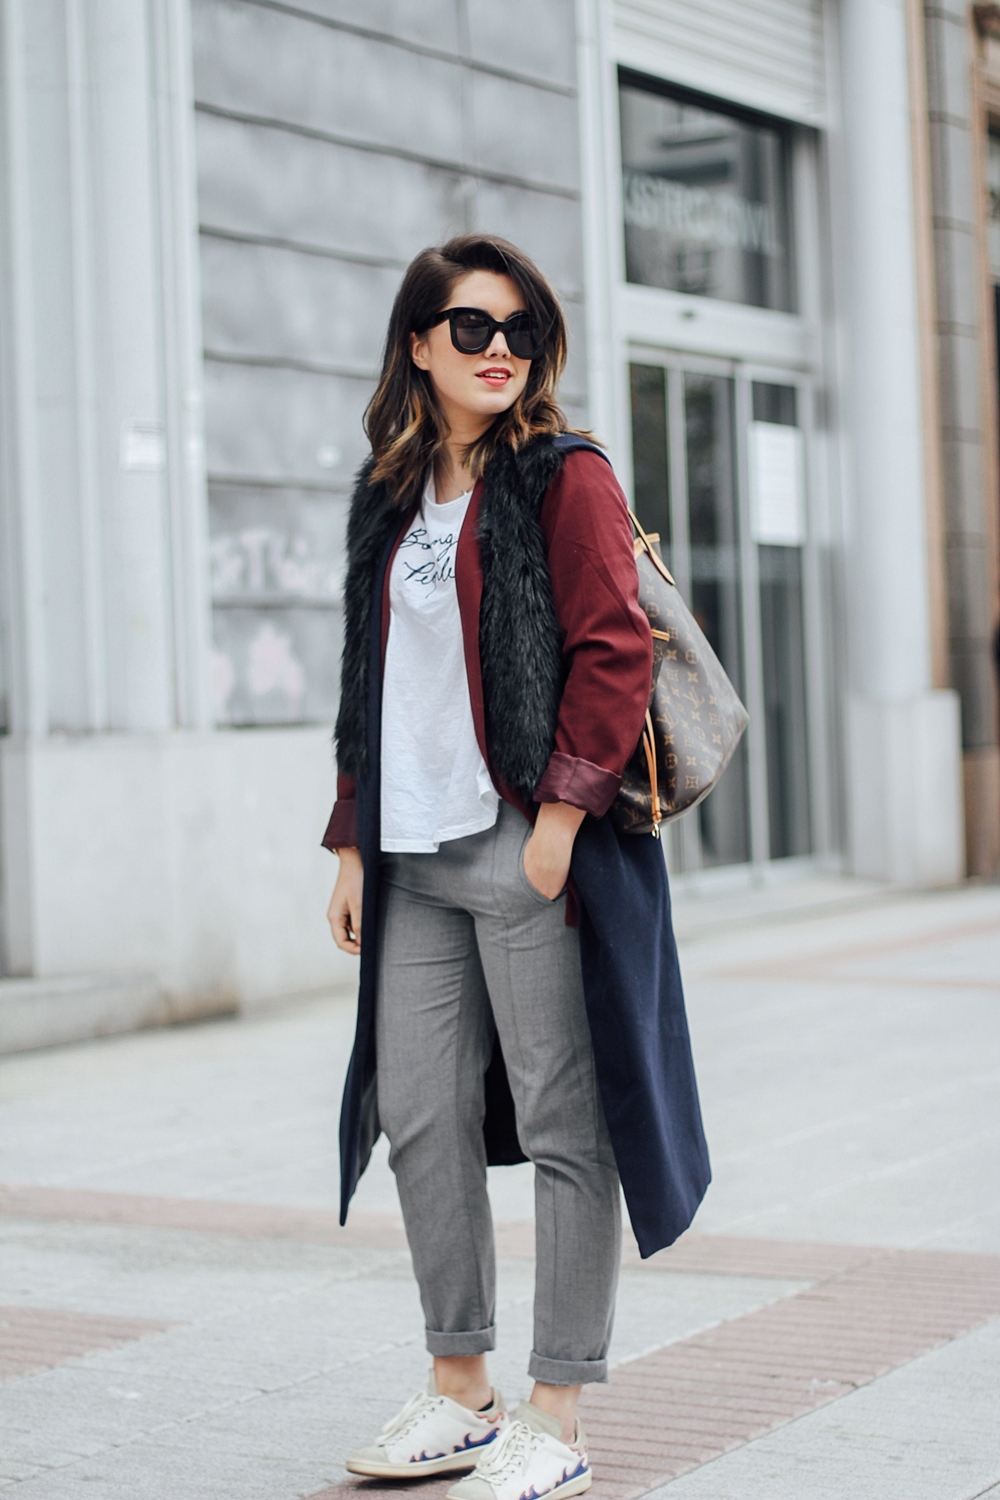 isabel marant sneakers with faux fur vest and red blazer streetstyle